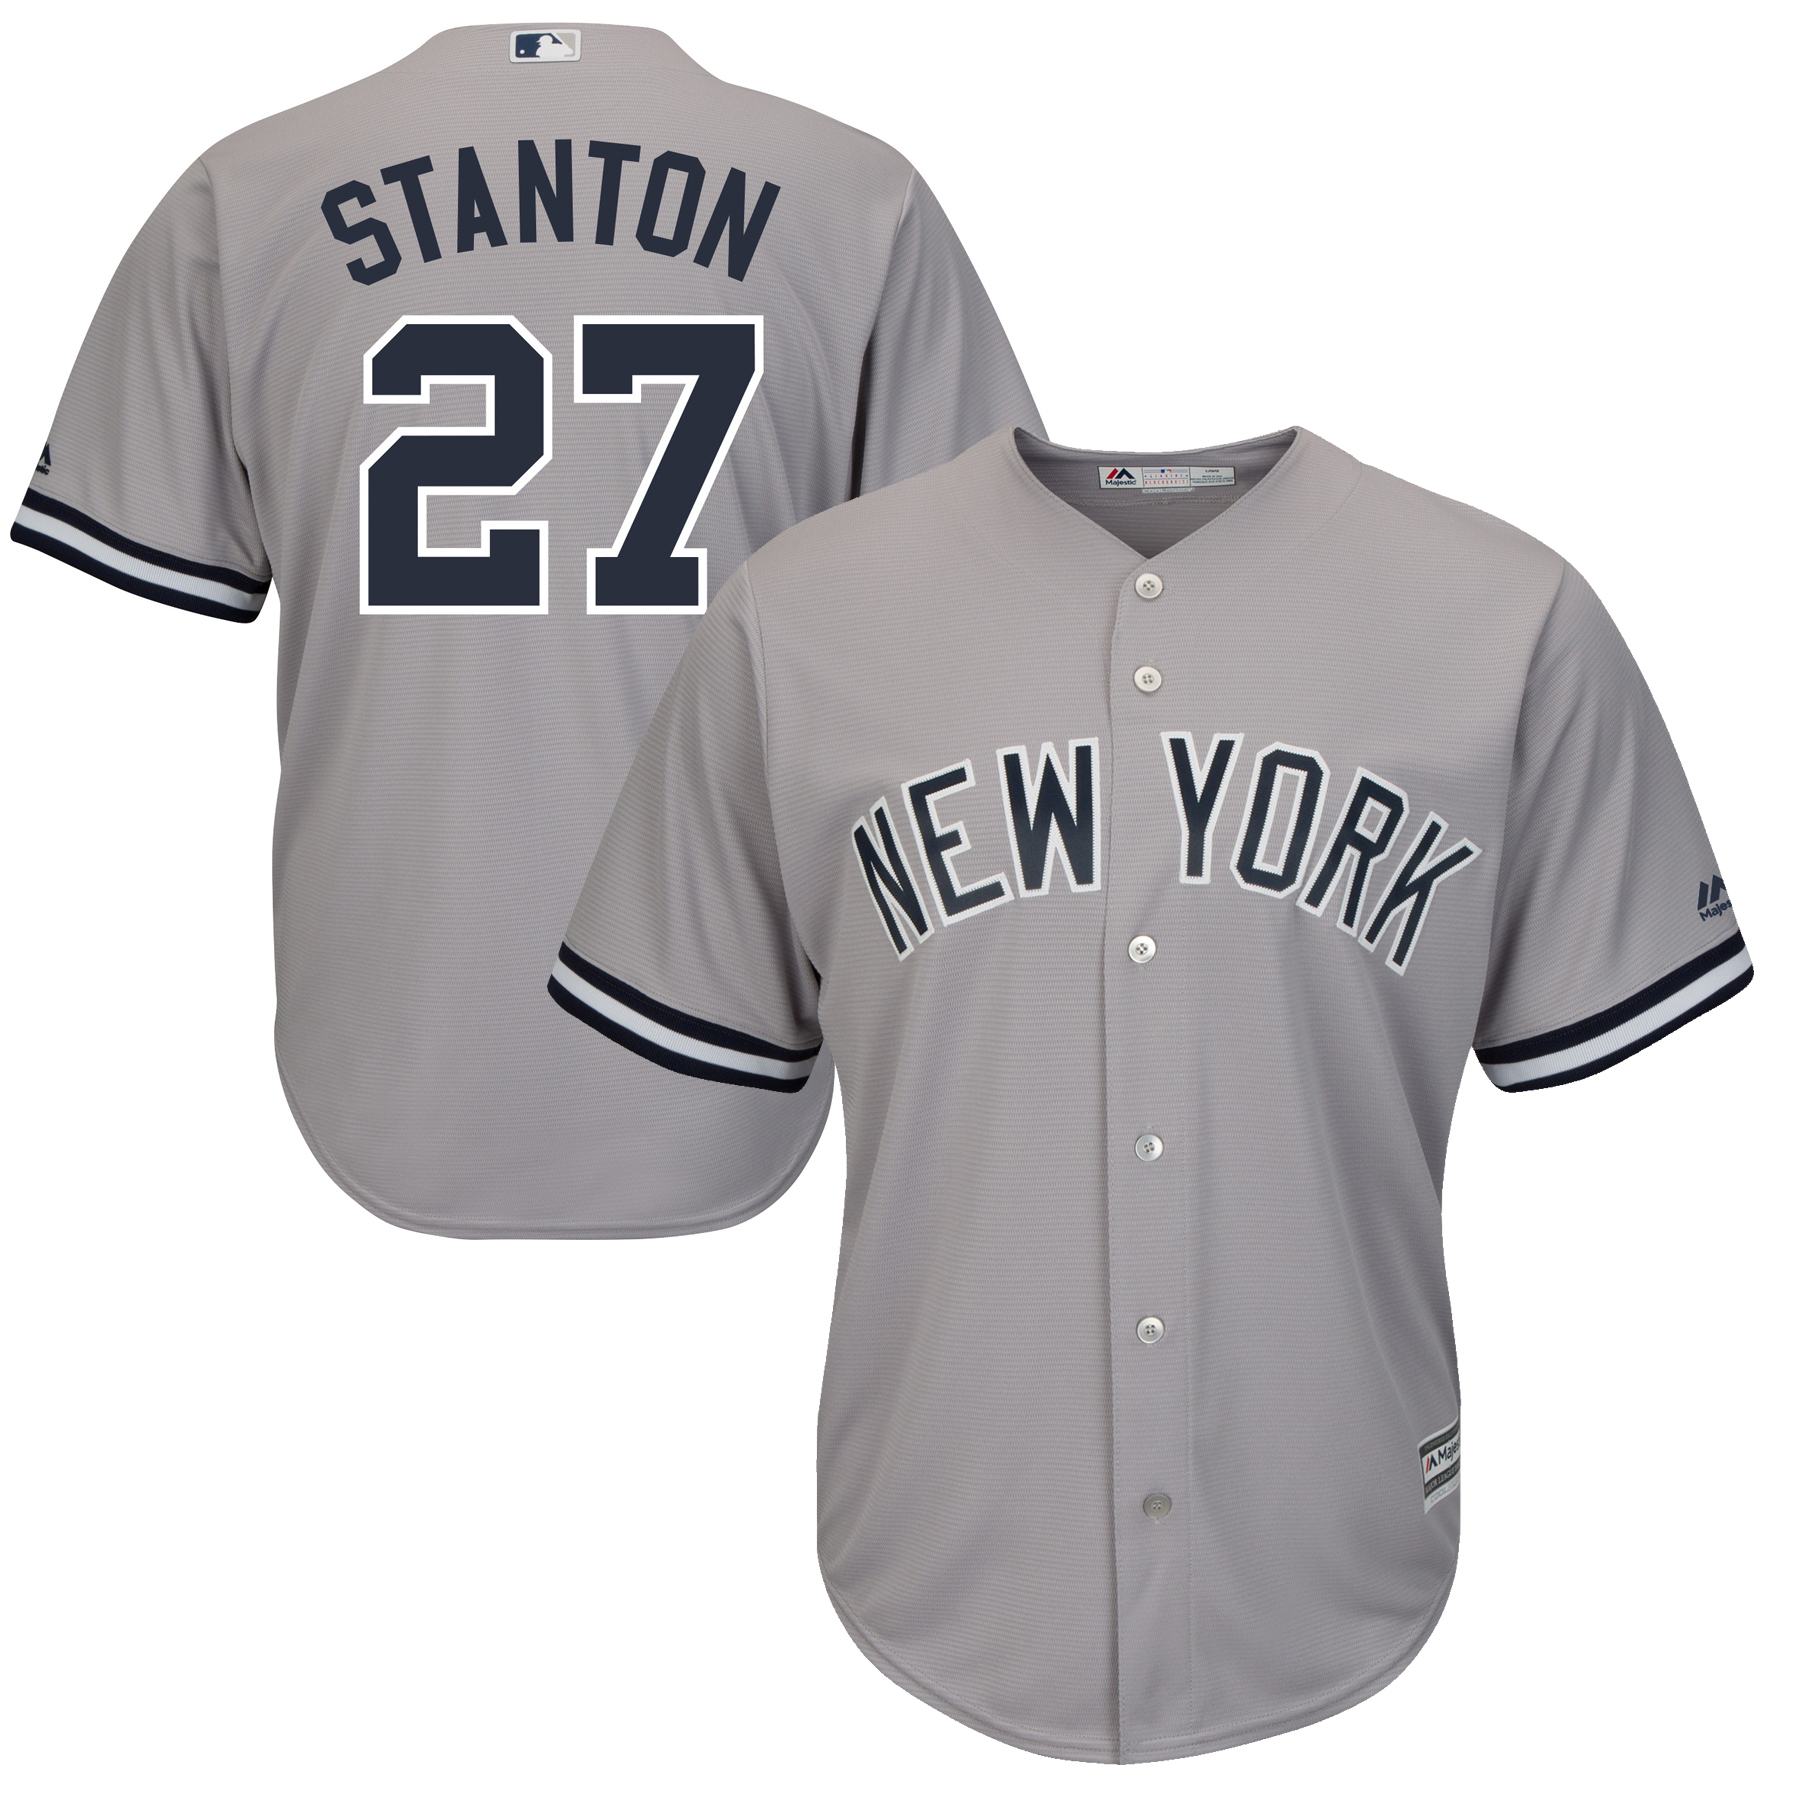 Giancarlo Stanton New York Yankees Majestic Cool Base Replica Player Jersey Gray by MAJESTIC LSG